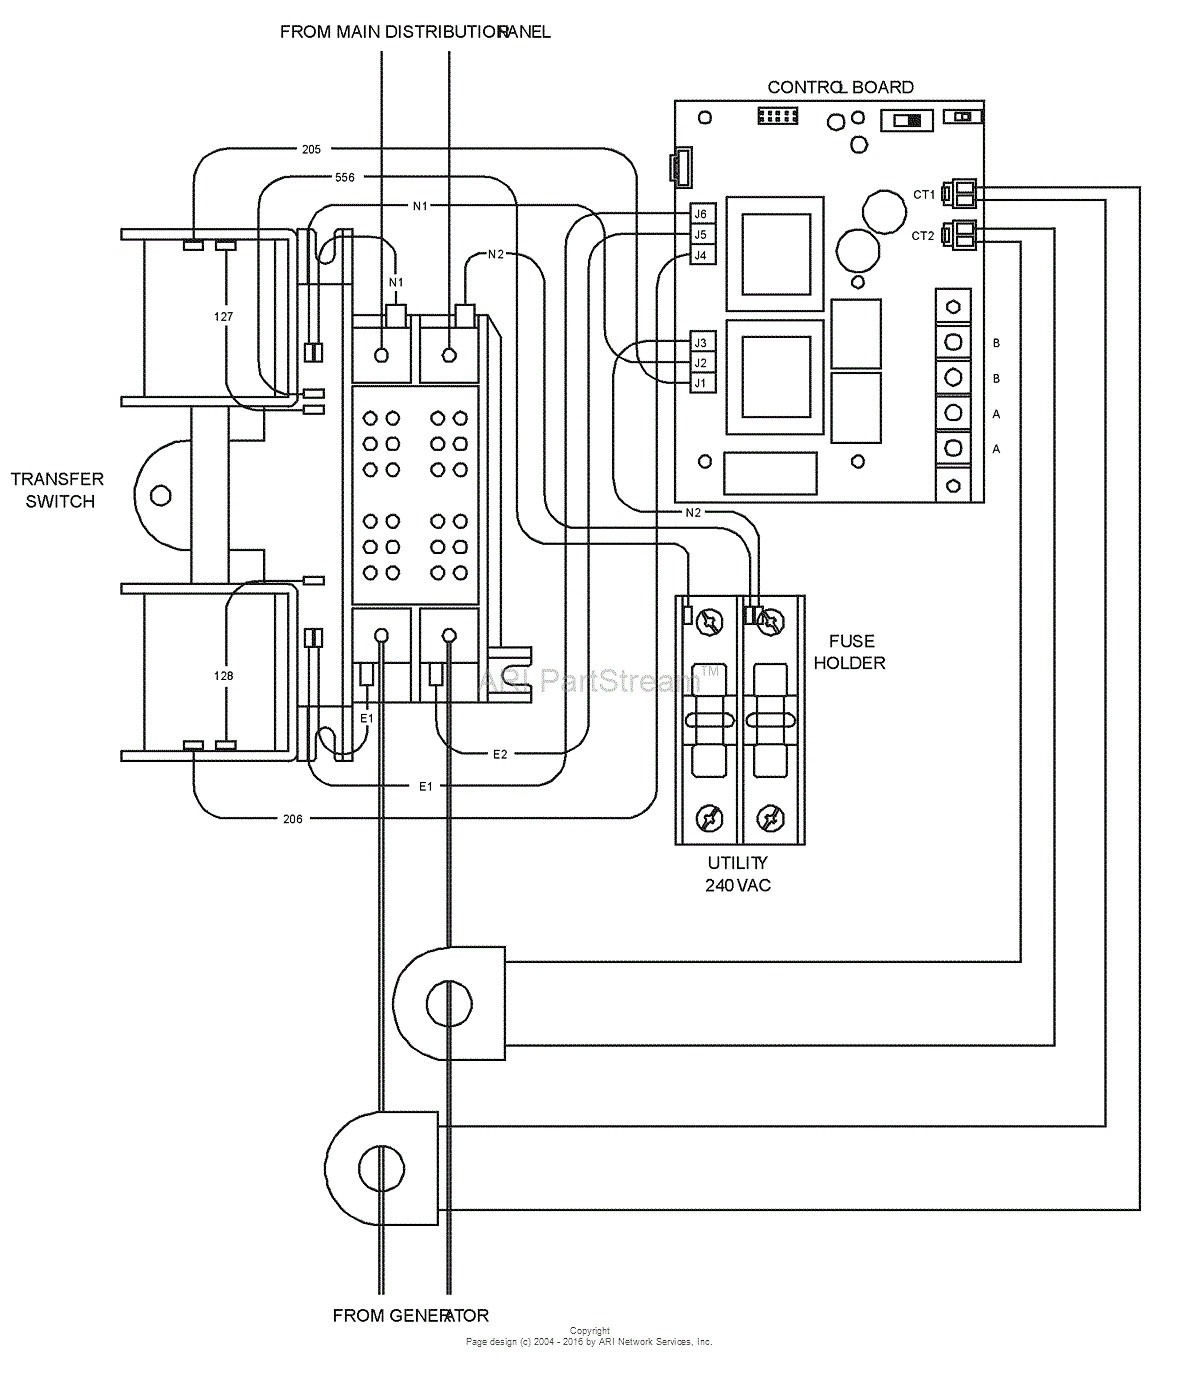 hight resolution of generac 200 amp transfer switch wiring diagram wiring diagram details to get information about generac auto transfer switch wiring